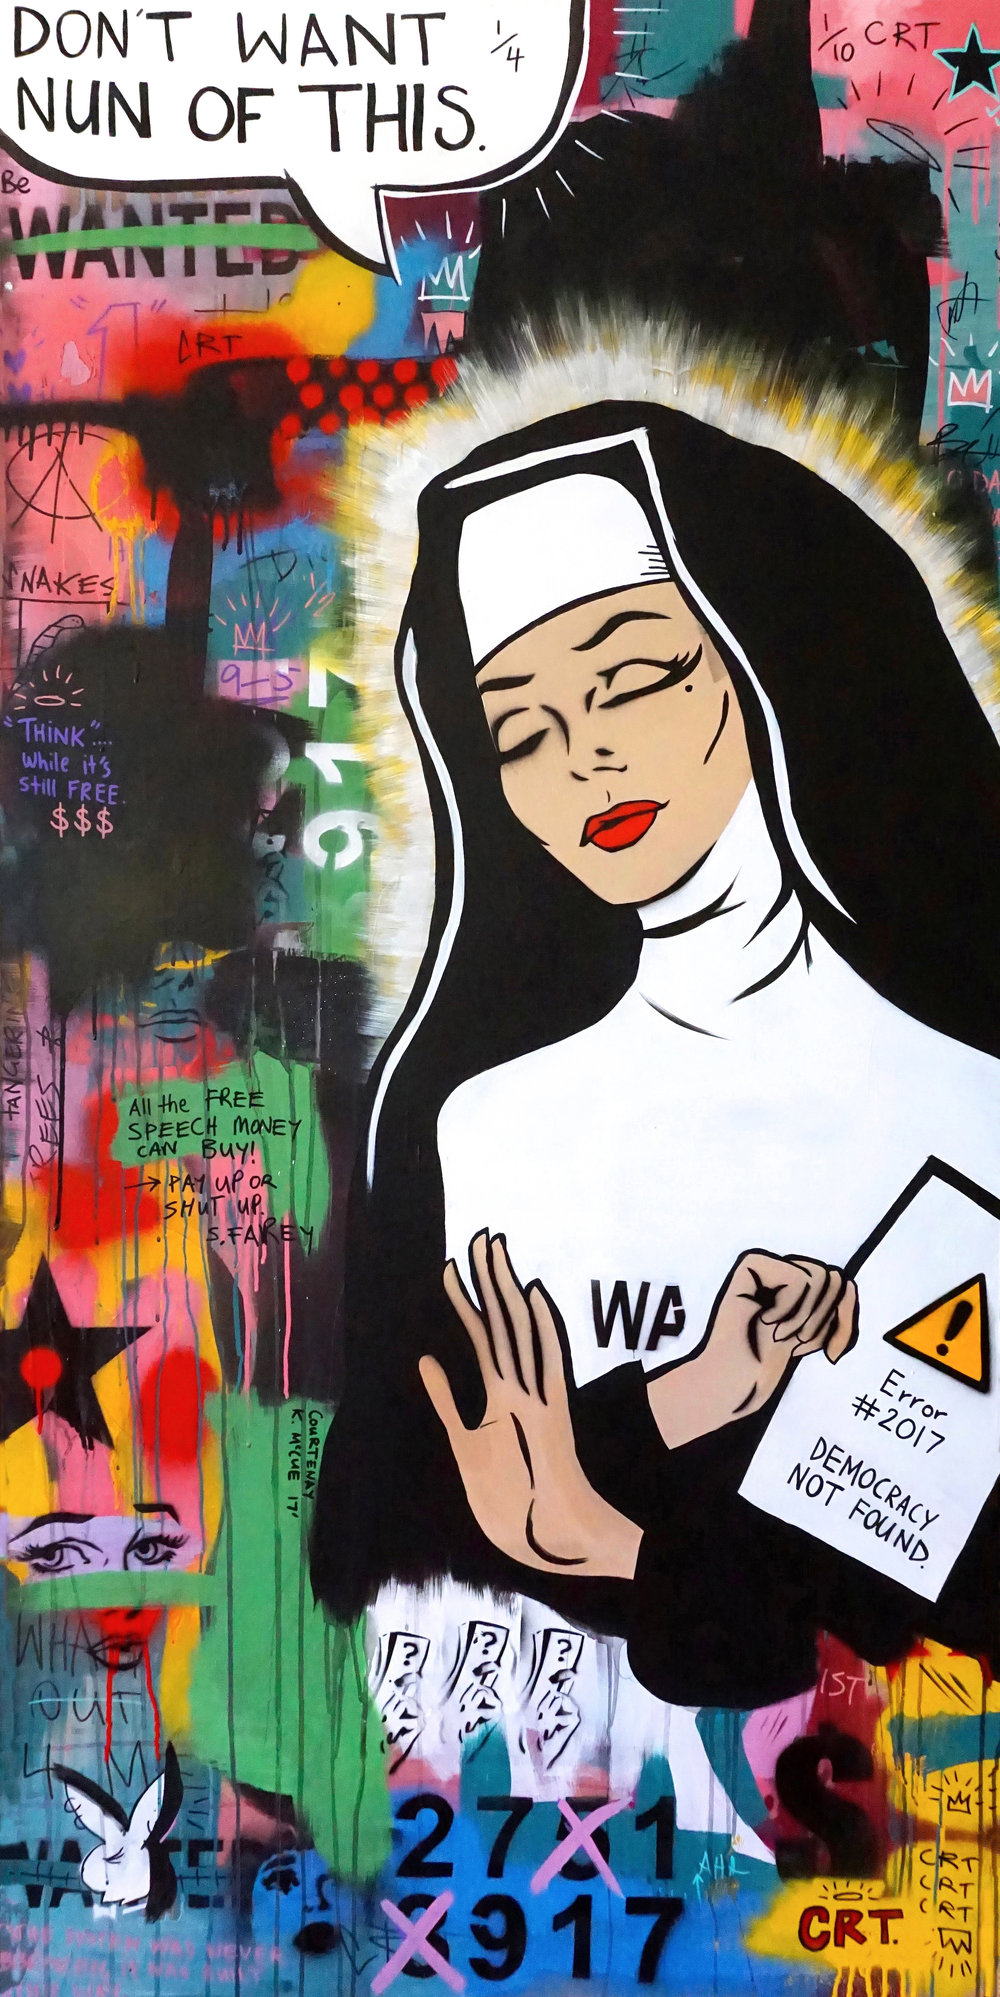 """DON'T WANT NUN OF THIS""  182cm x 92cm Mixed Media on Board 2017  Sold"